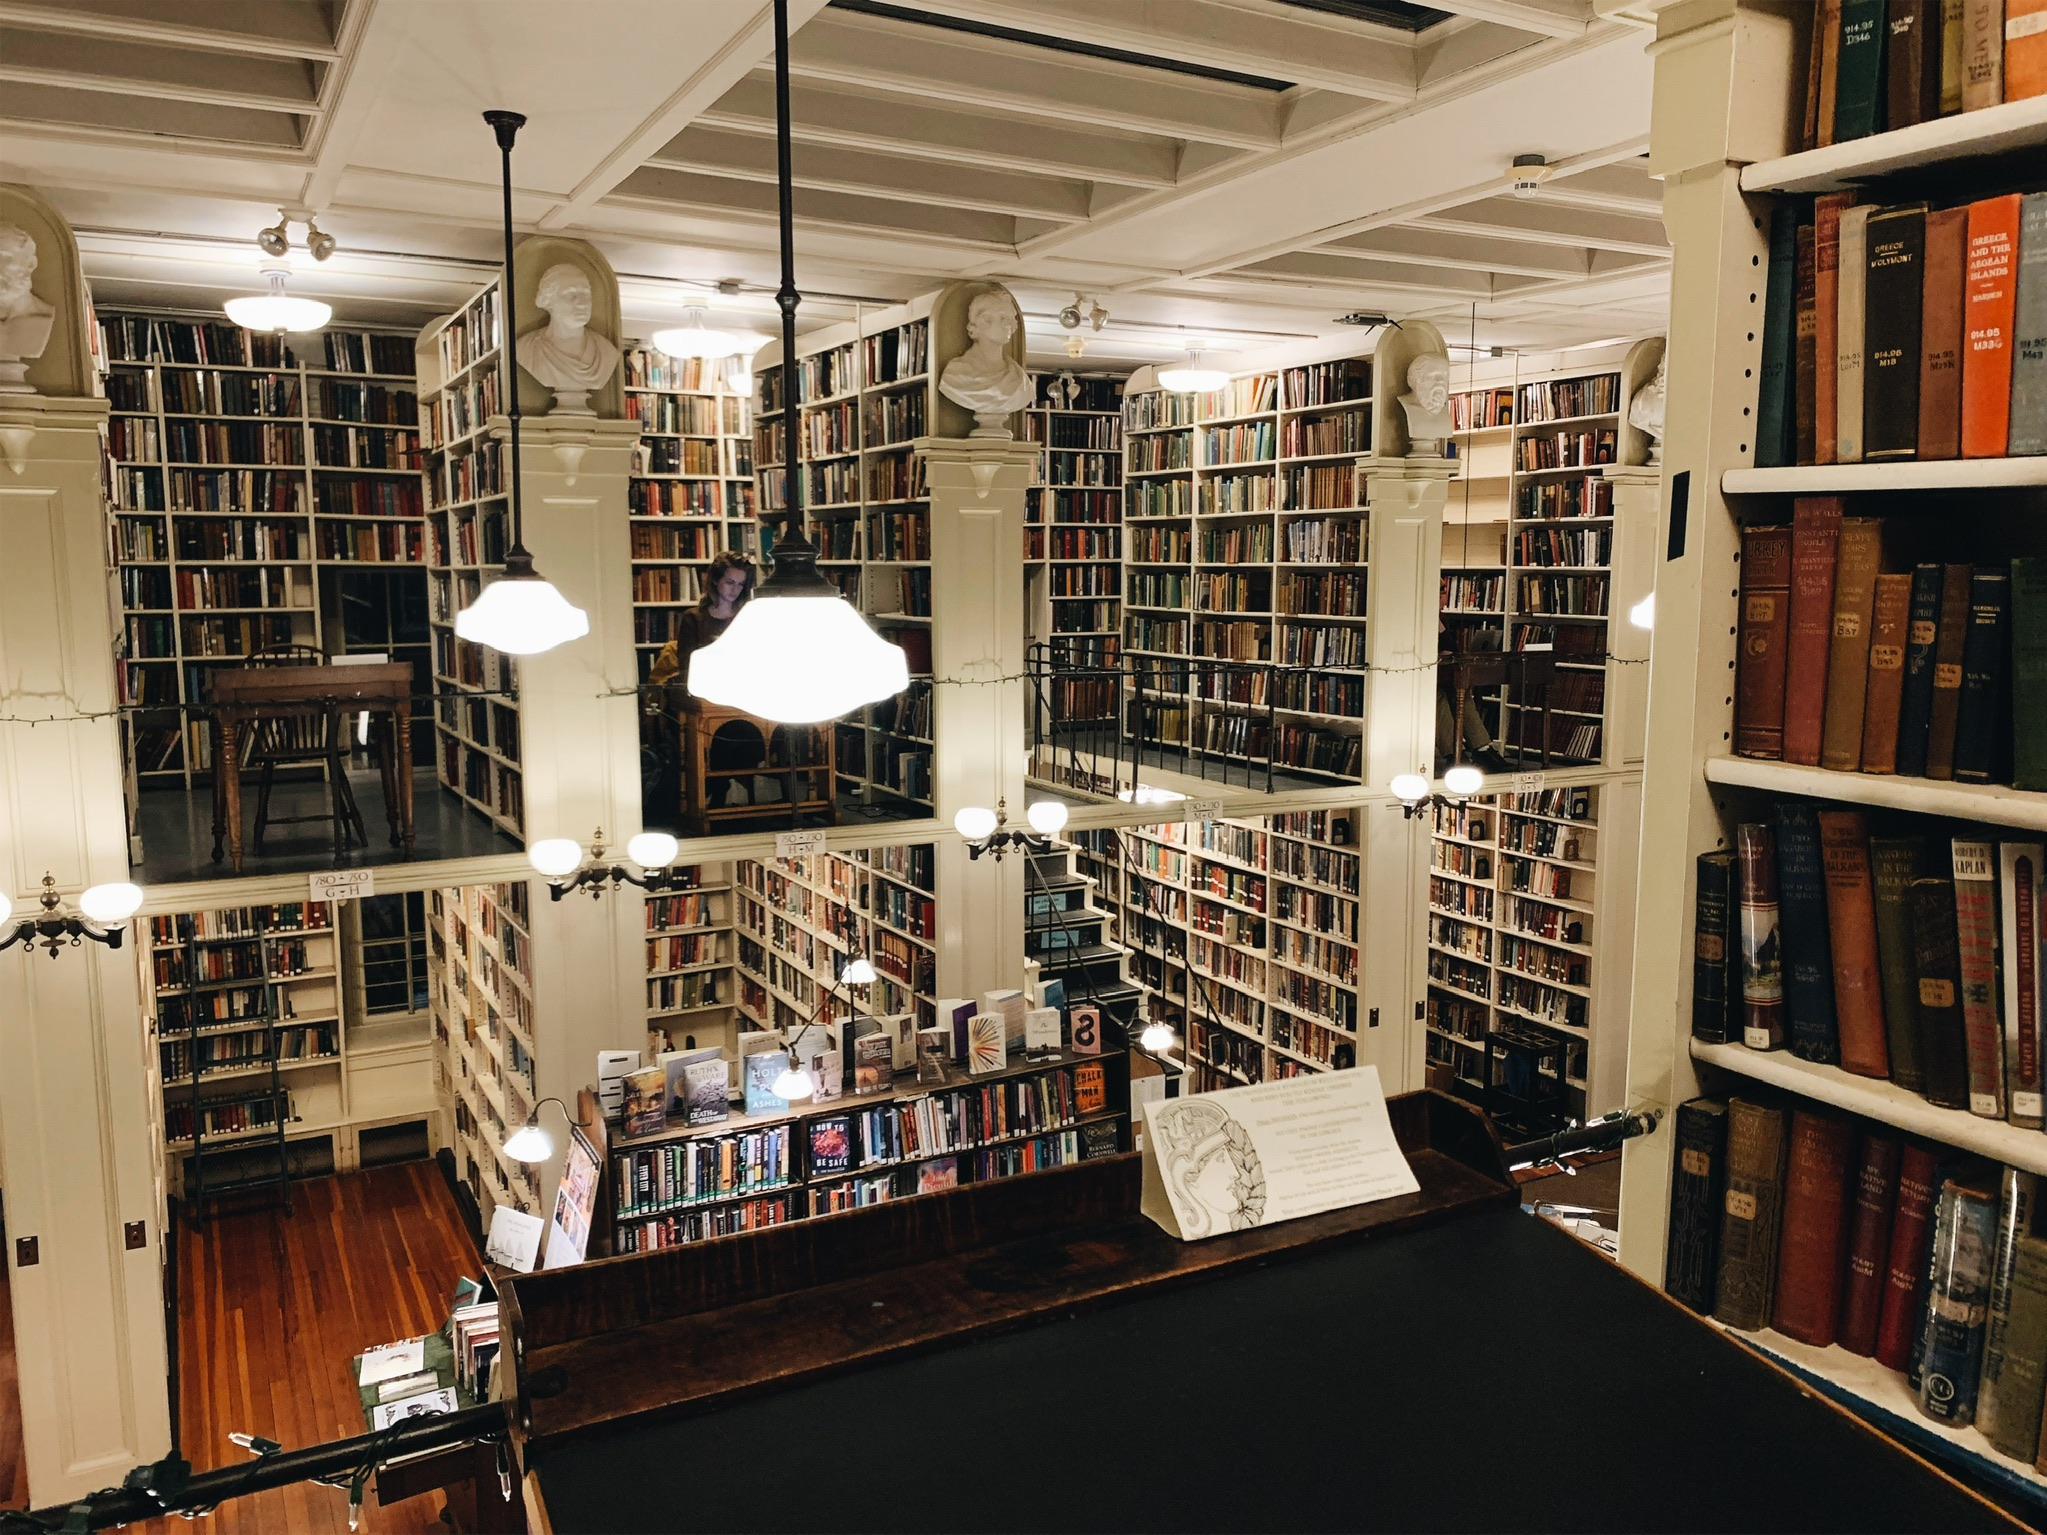 I met the Library of my life in RI